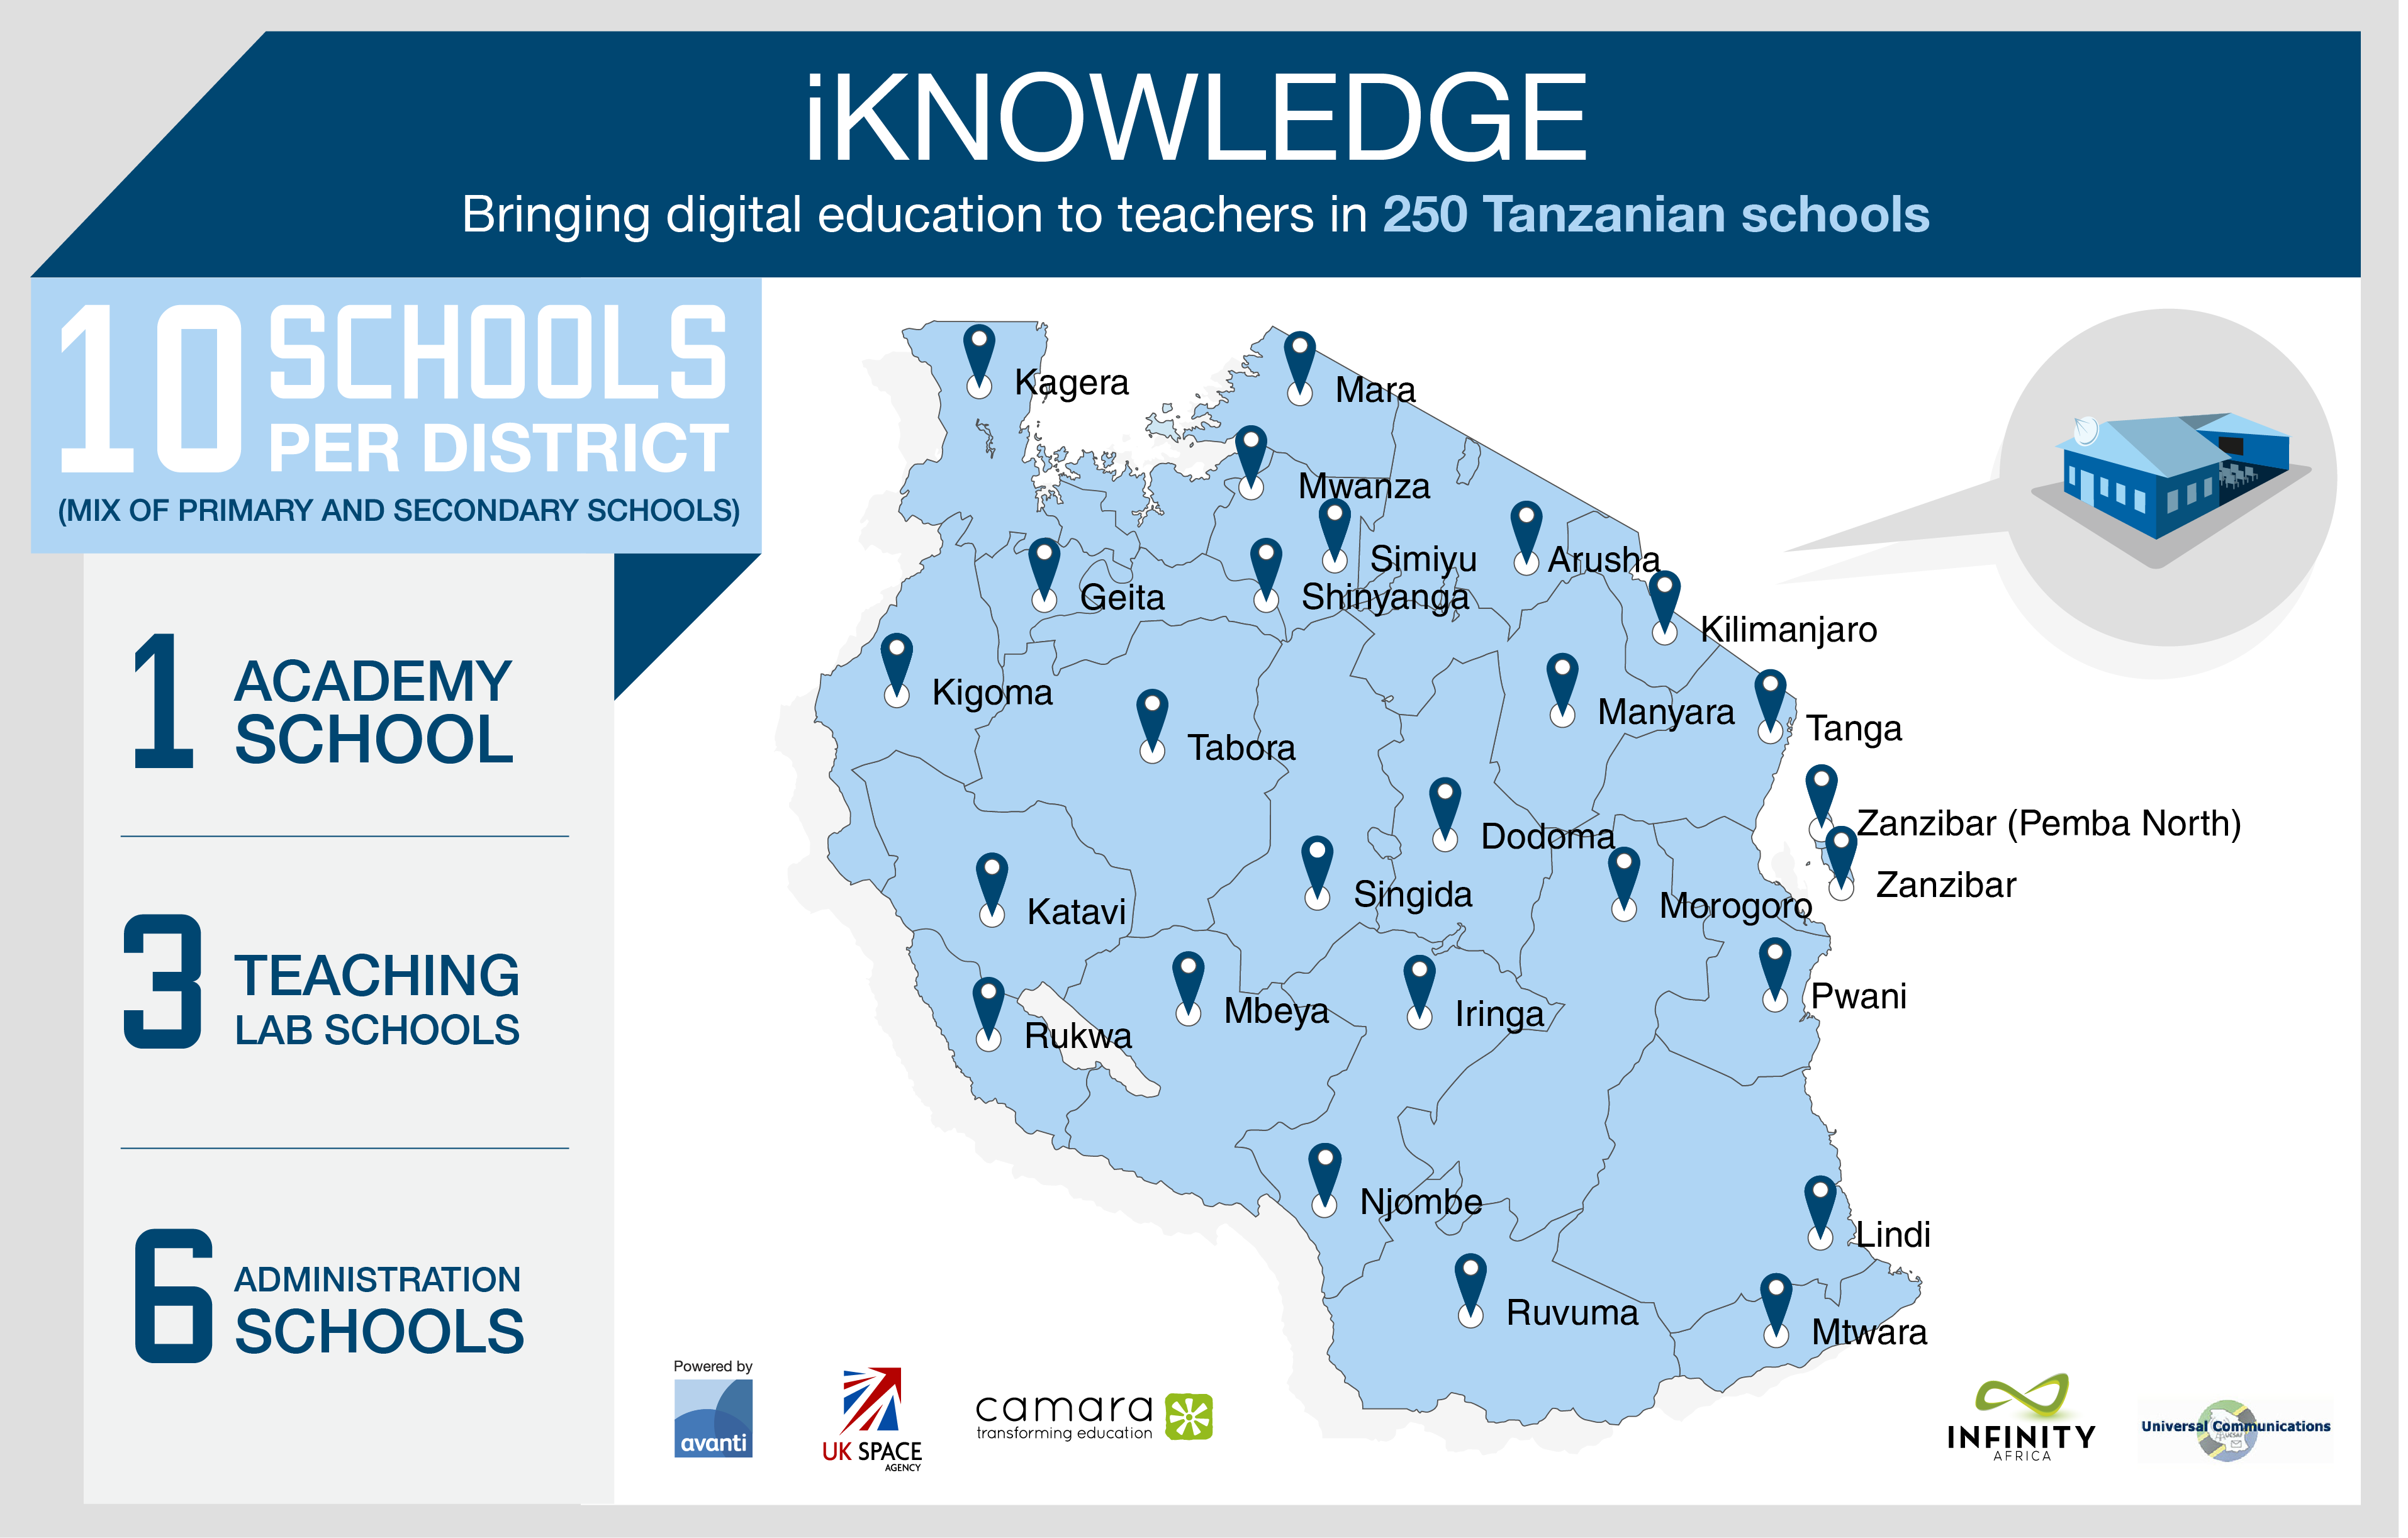 iknowledge-graphics-03